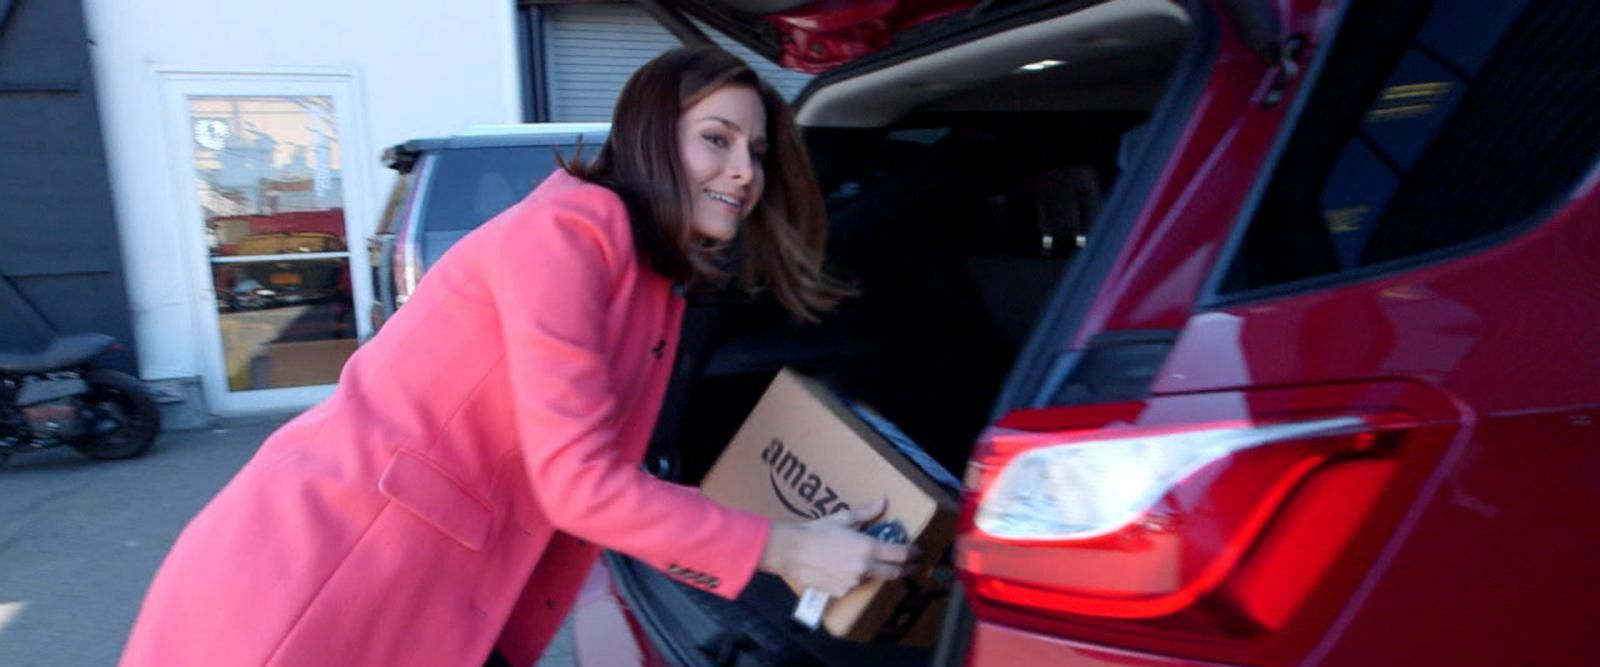 VIDEO: Amazon now offering in-car delivery service